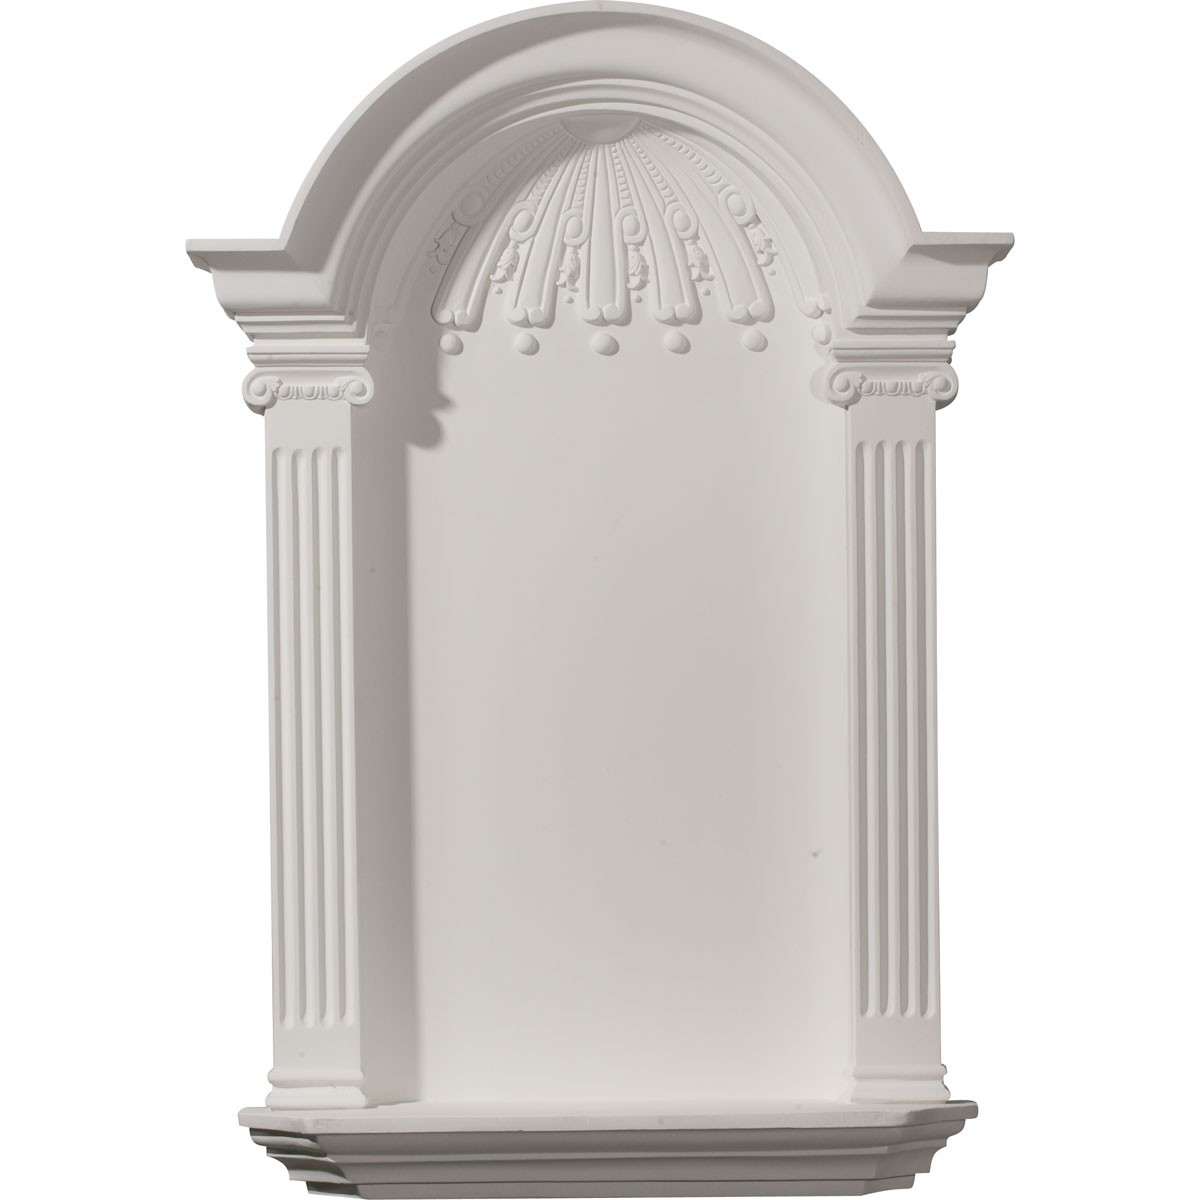 """EM-NCH21X33WA - 21 1/8""""W x 33 3/4""""H x 4 1/4""""D x 28 1/2""""IH Small Waltz Wall Niche, Surface Mount"""